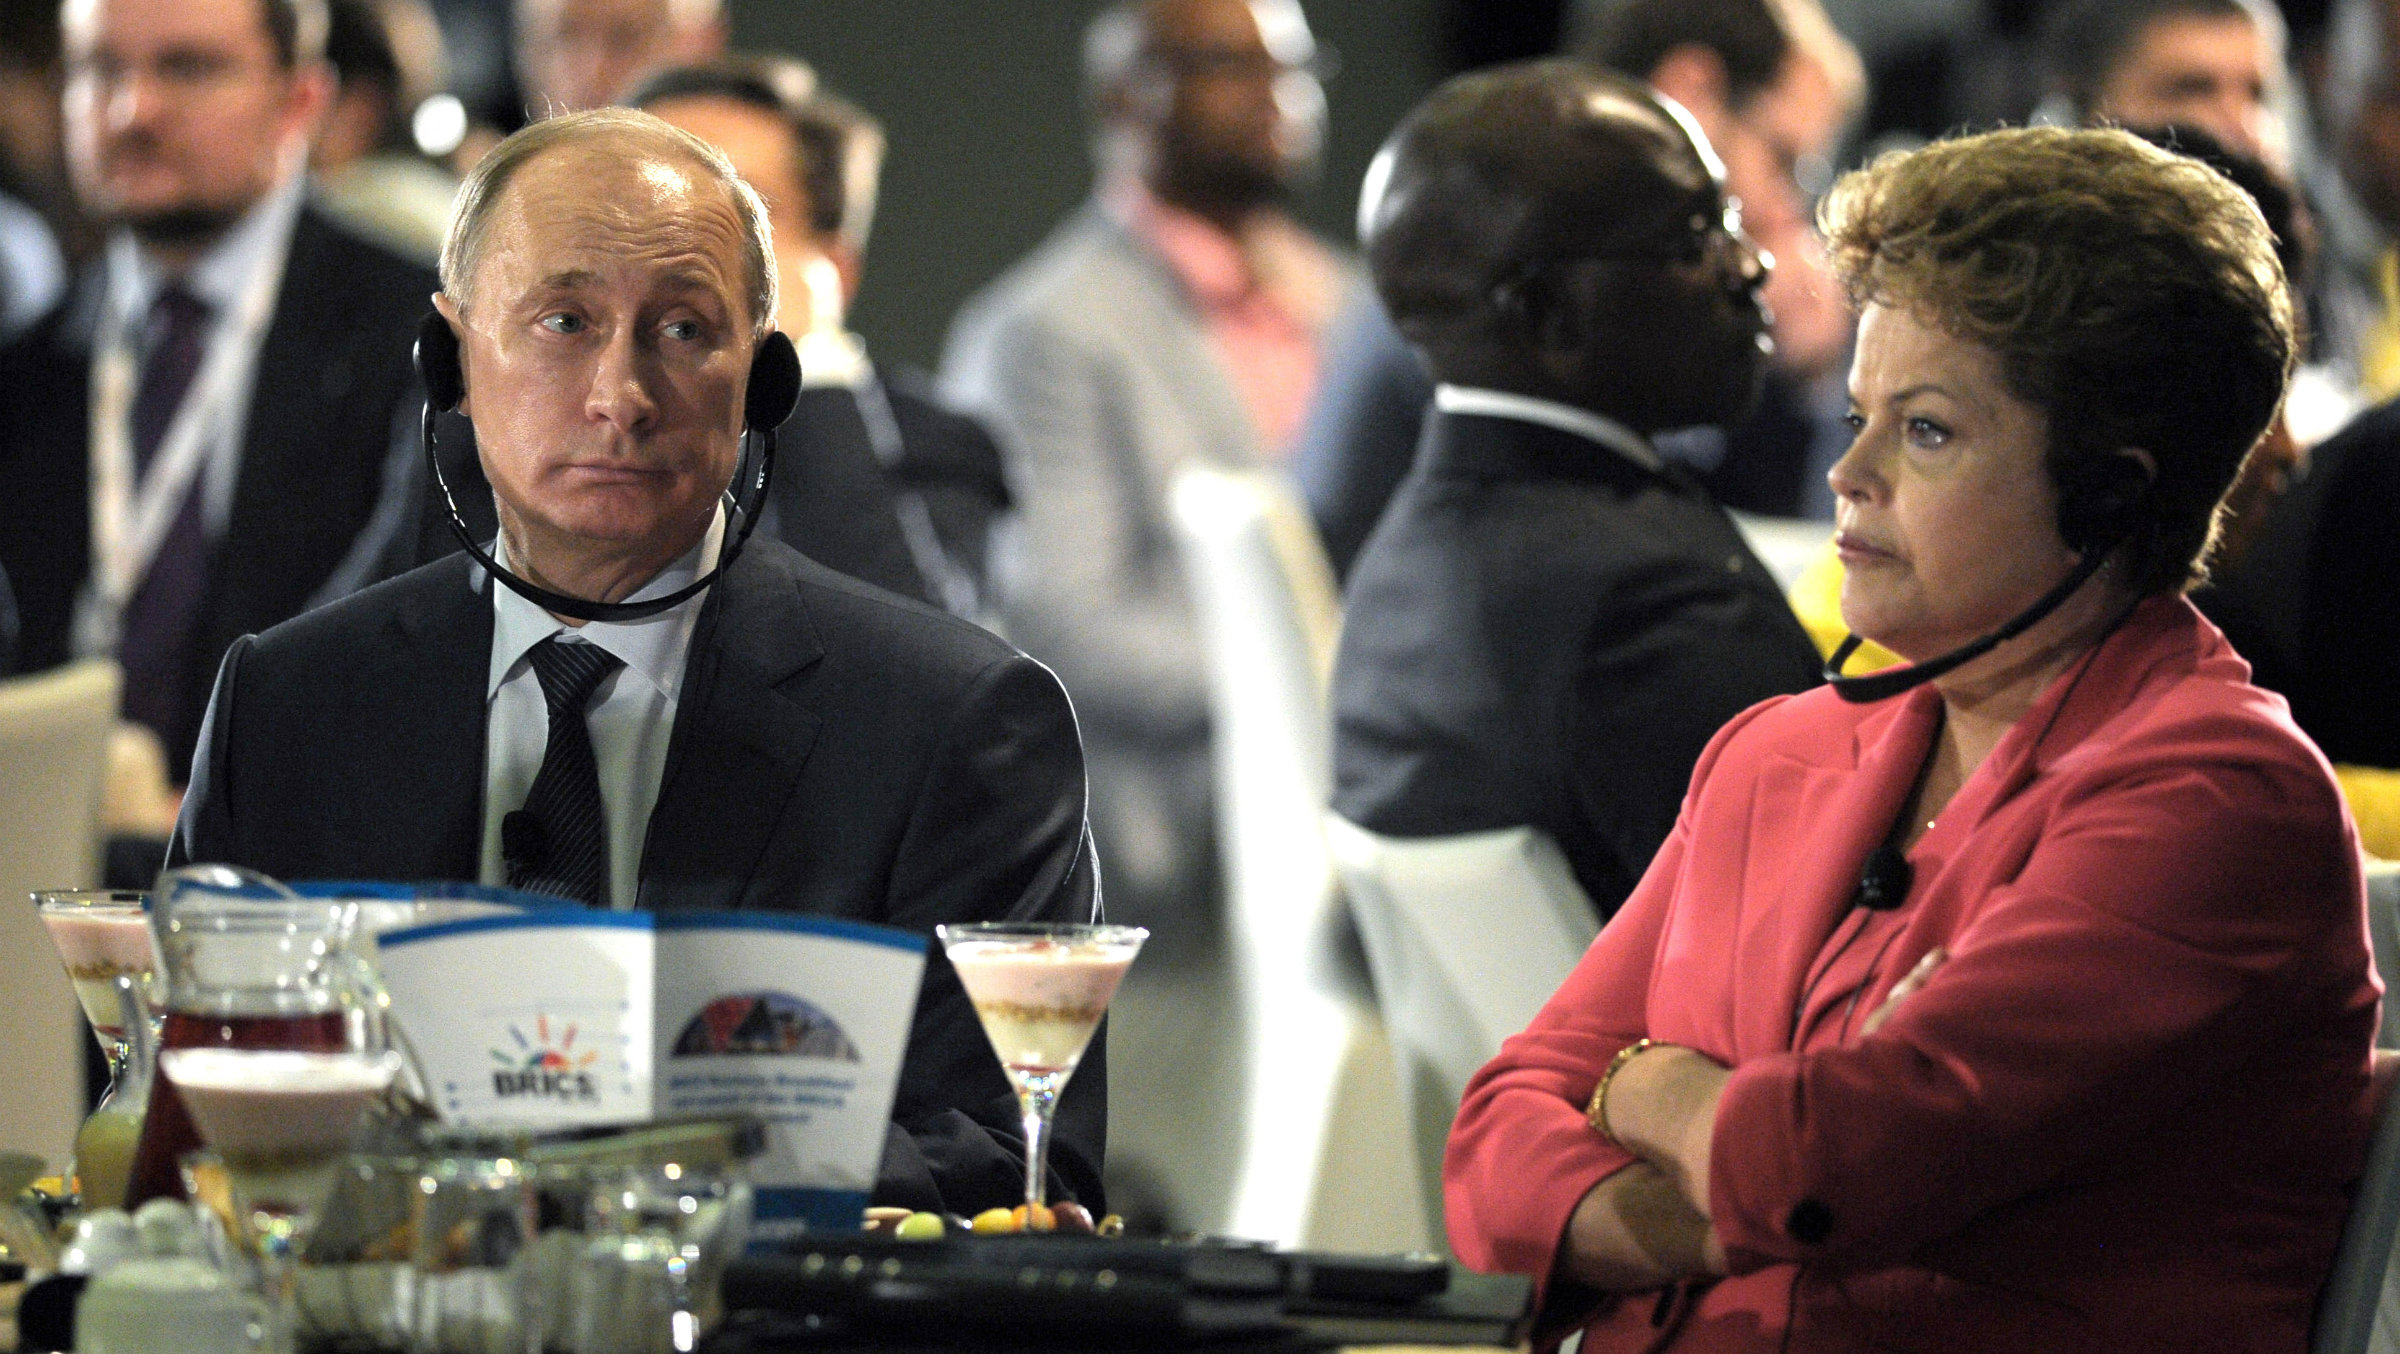 Russian President Vladimir Putin, left, and Brazilian President Dilma Rousseff sit awkwardly at a table.